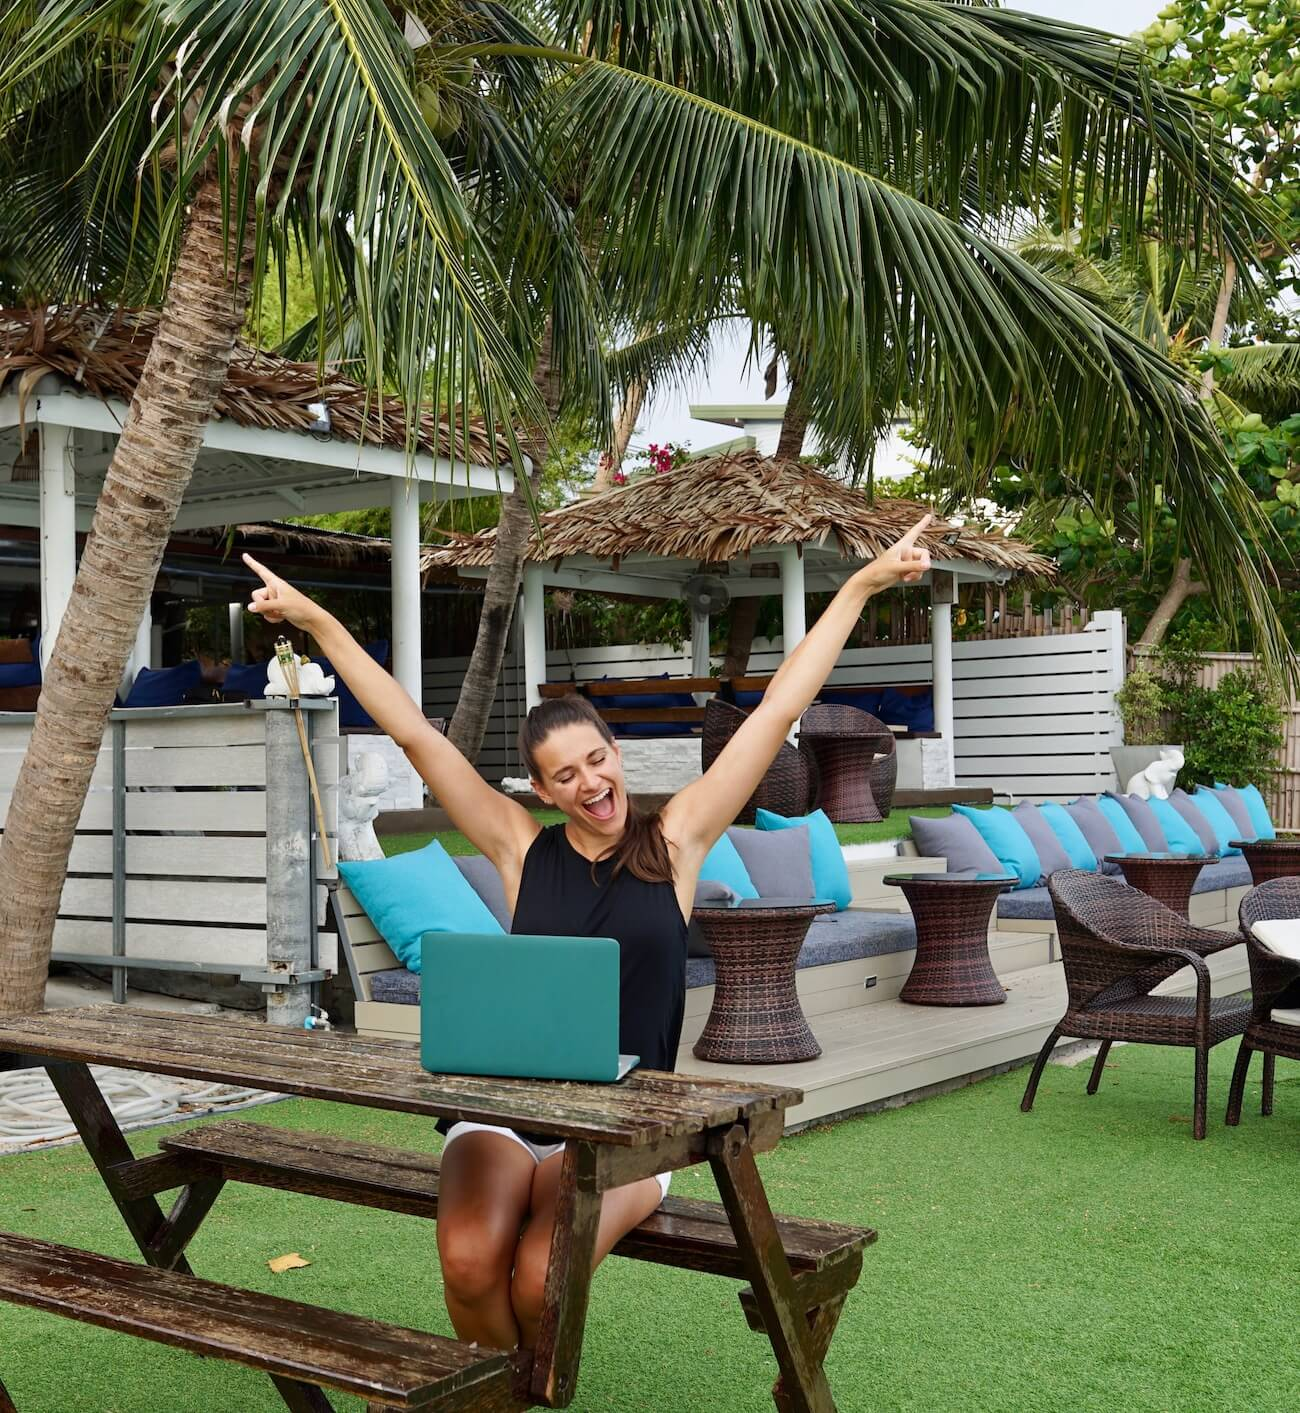 Nicola smiling with her arms spread wide and her two index fingers pointing up. She is working on her laptop with a palm tree and hotel in the background.